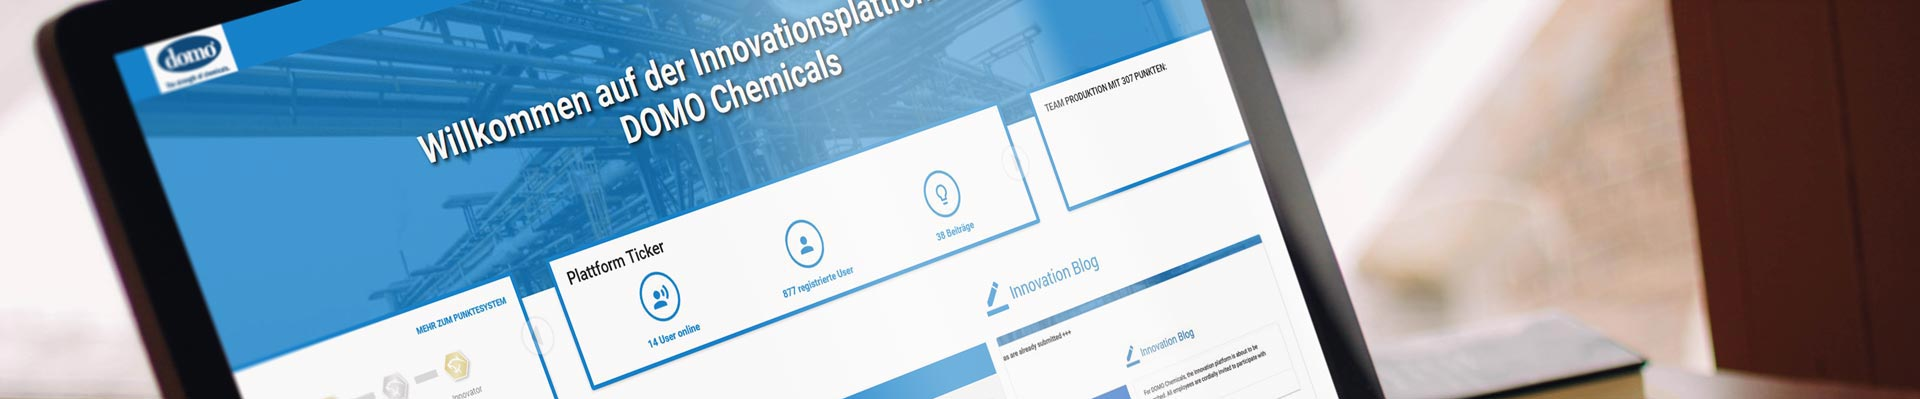 Innovationsmanagement-Software Case Study Domo Chemicals